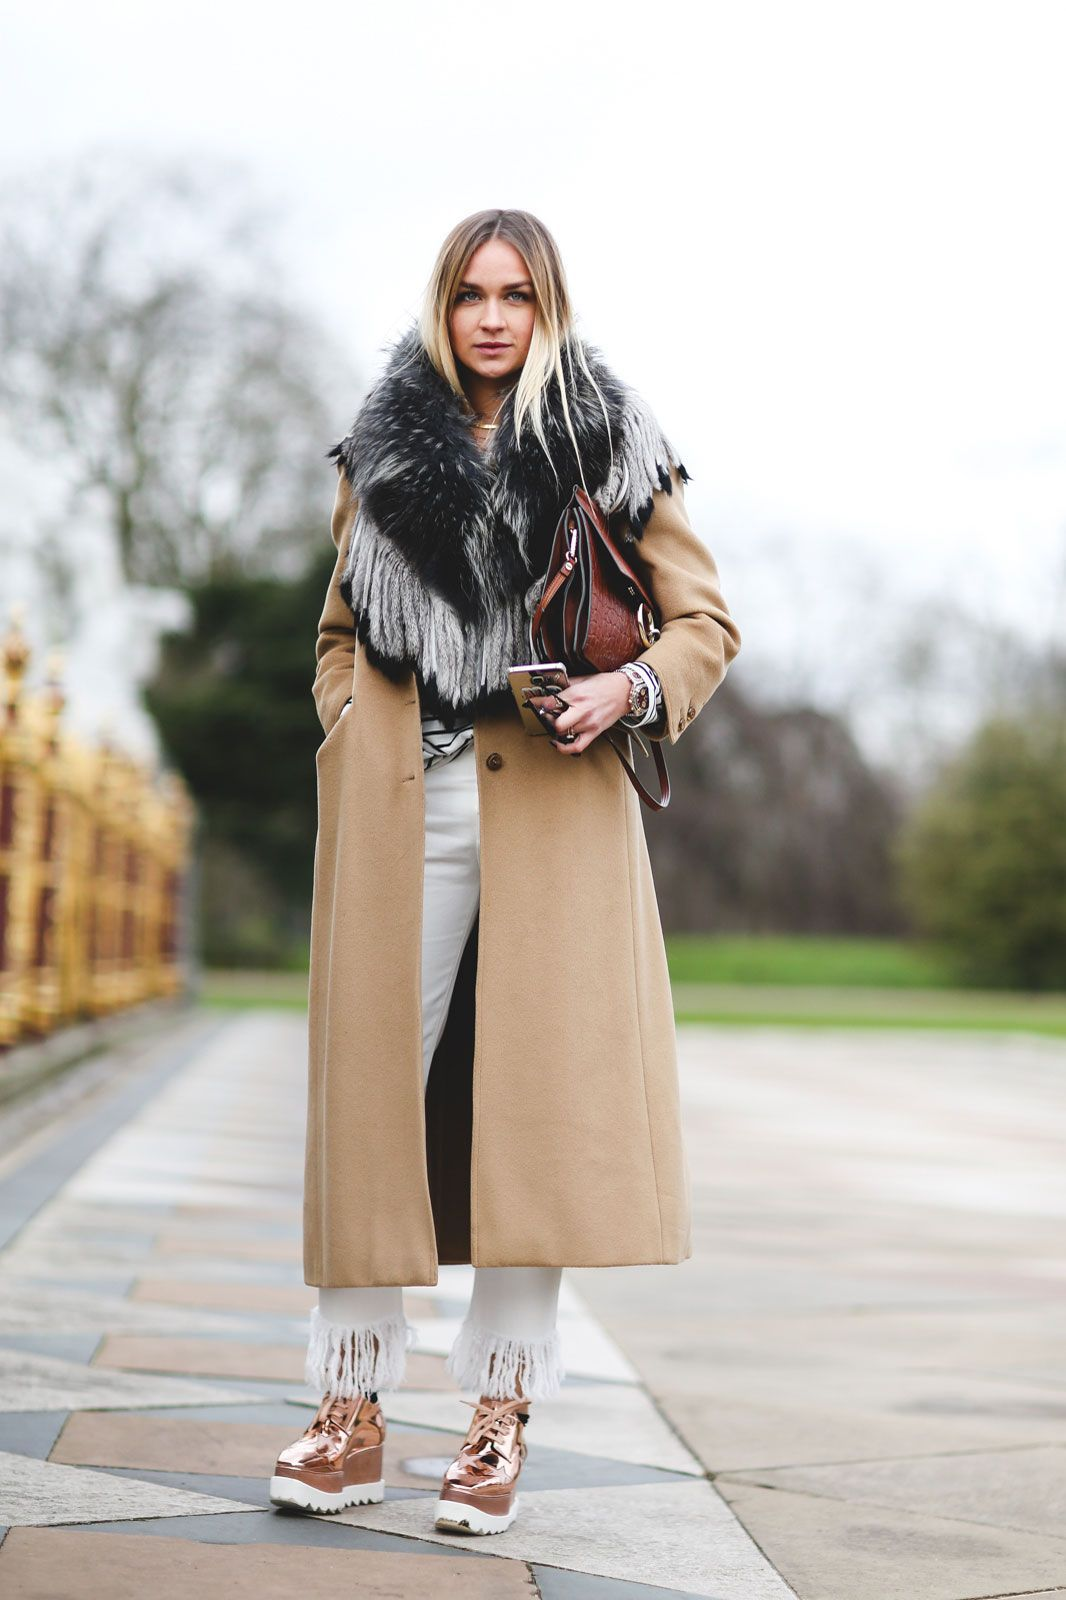 London Street Style That Just Oozes Cool #refinery29  http://www.refinery29.com/2016/02/103453/london-fashion-week-fall-winter-2016-street-style-pictures#slide-44  Platformed sneakers bring us back to our Spice Girls days (and we couldn't be happier)....